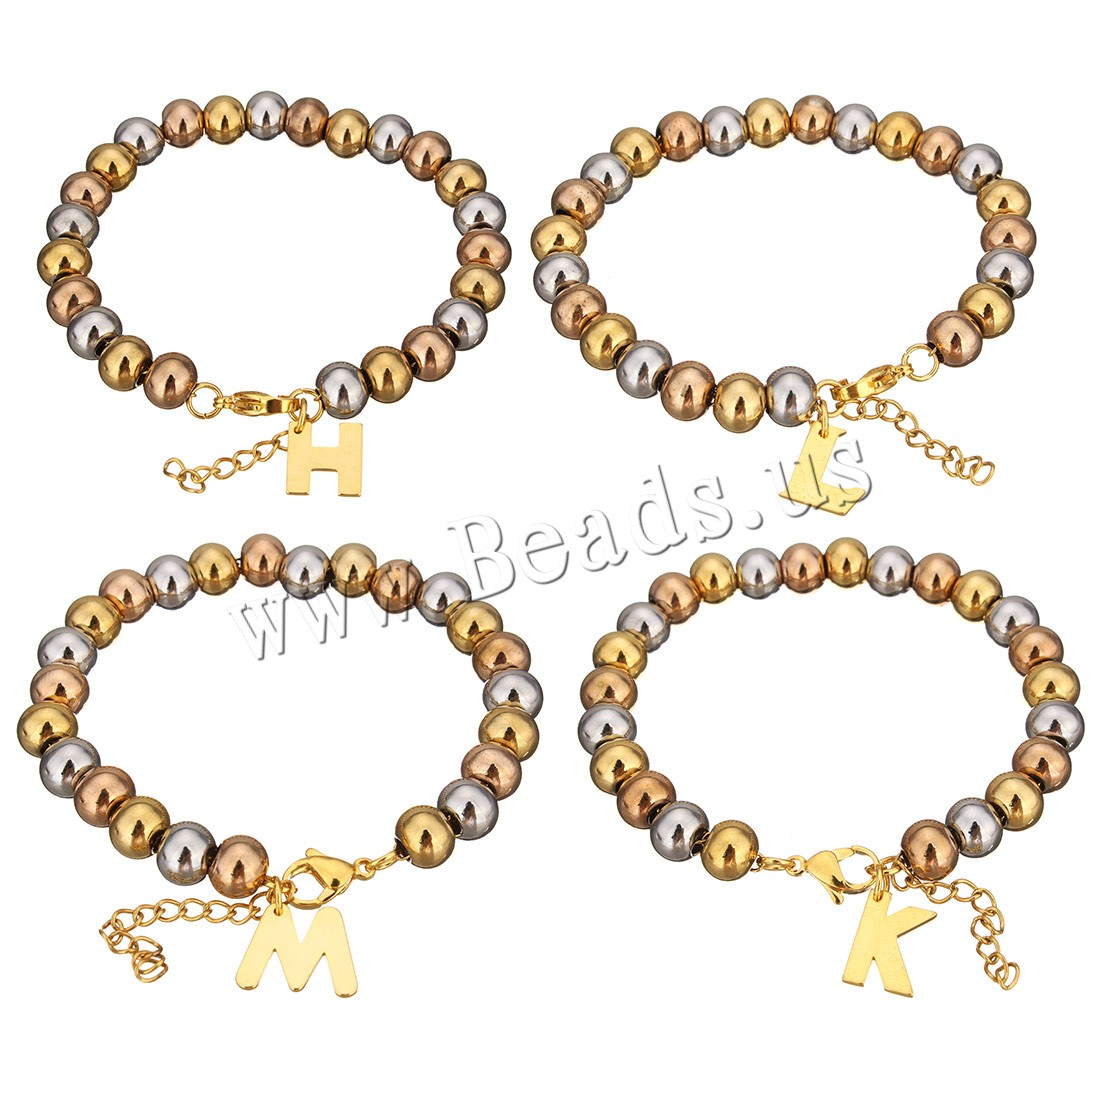 Buy Stainless Steel Jewelry Bracelet 1.5Inch extender chain Letter plated charm bracelet & beaded bracelet & different styles choice & woman 5-14x2-14mm 6x8mm Sold Per Approx 7 Inch Strand